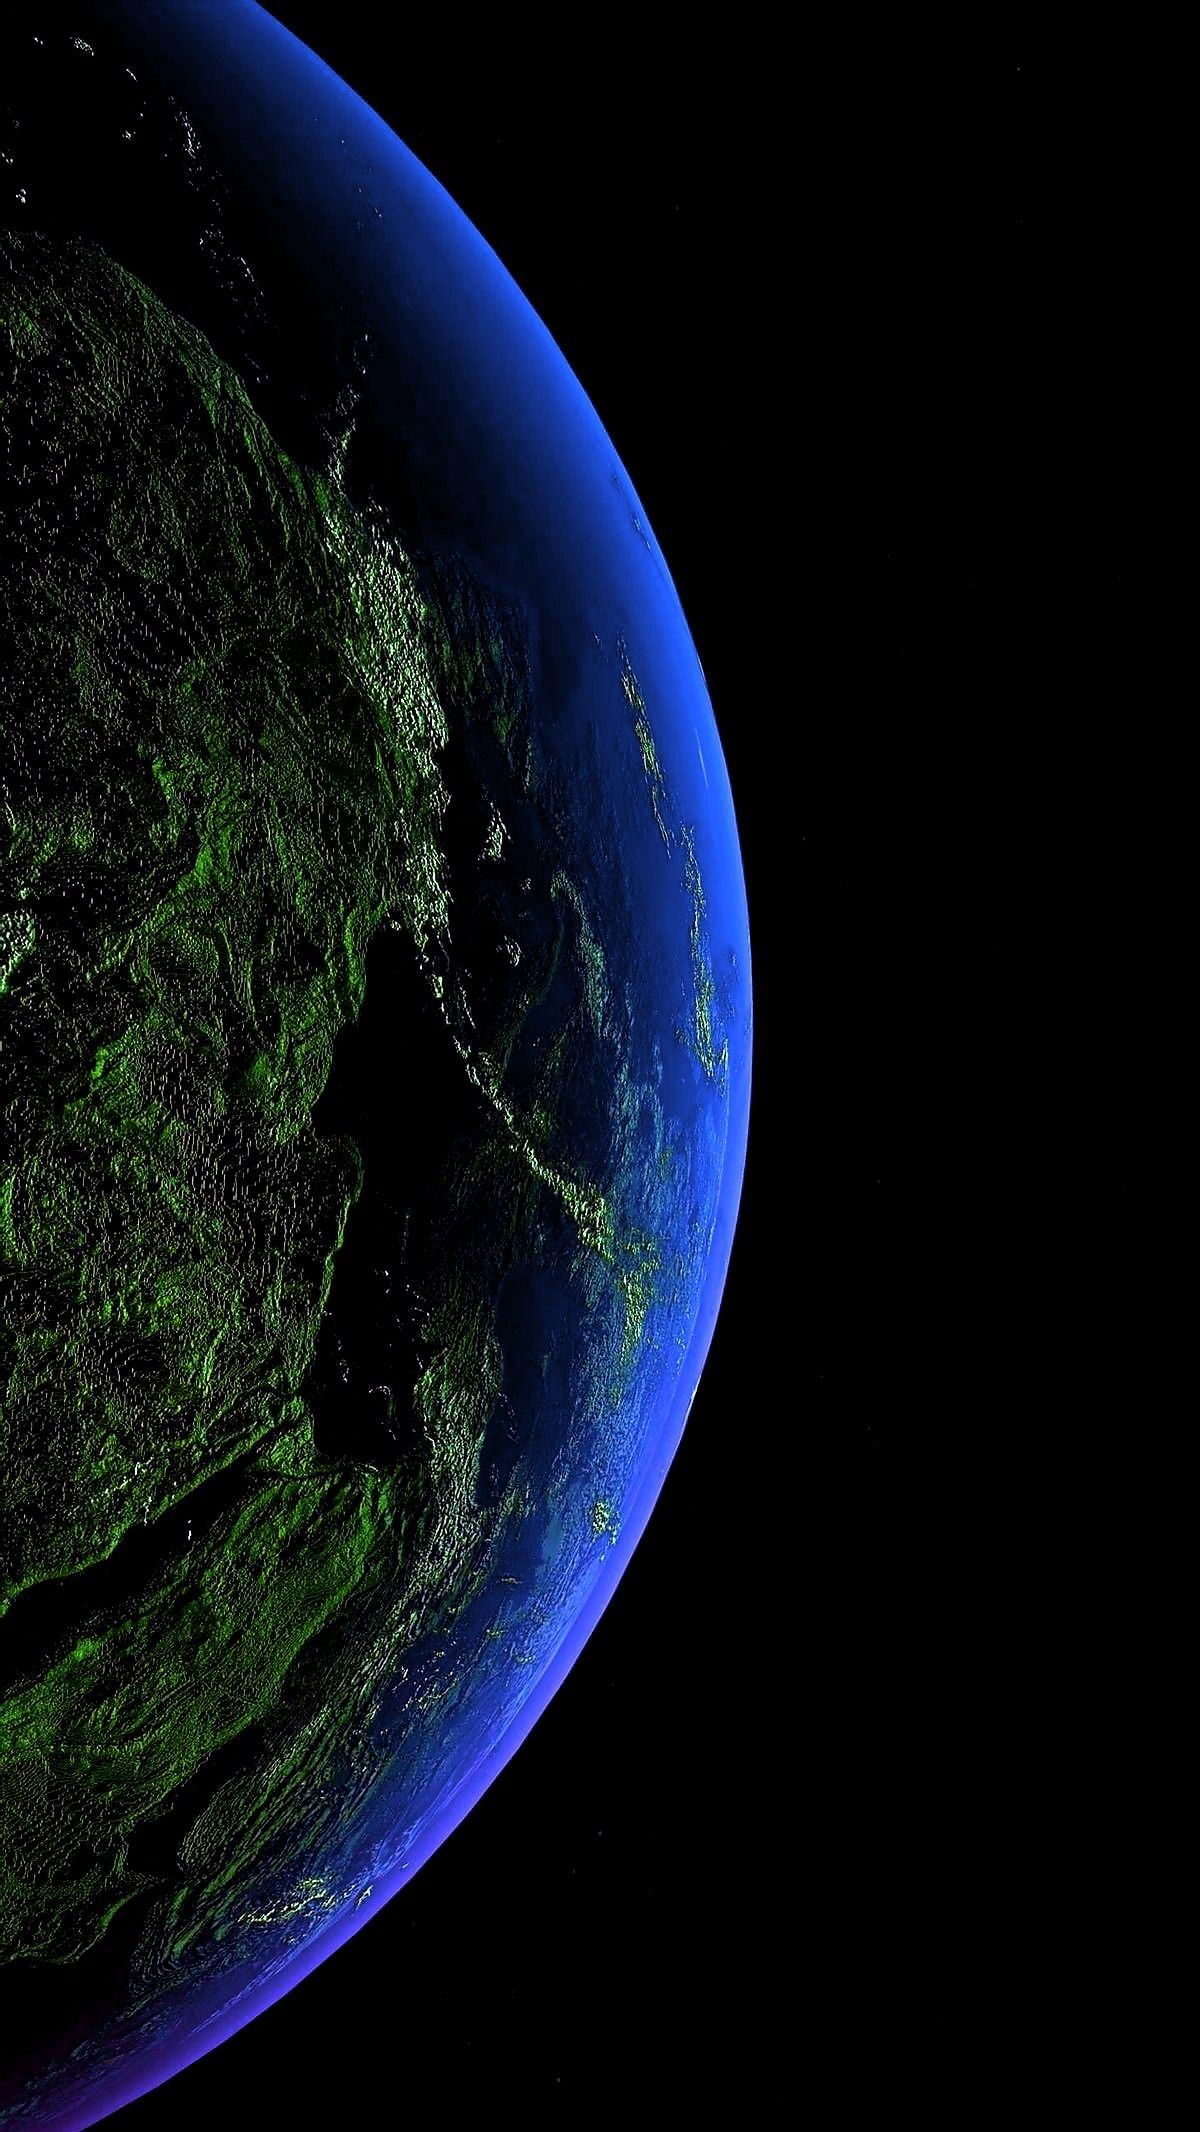 Apple Iphone Earth Wallpaper In 2020 Iphone Wallpaper Earth Iphone Wallpaper Green Galaxy Wallpaper Iphone